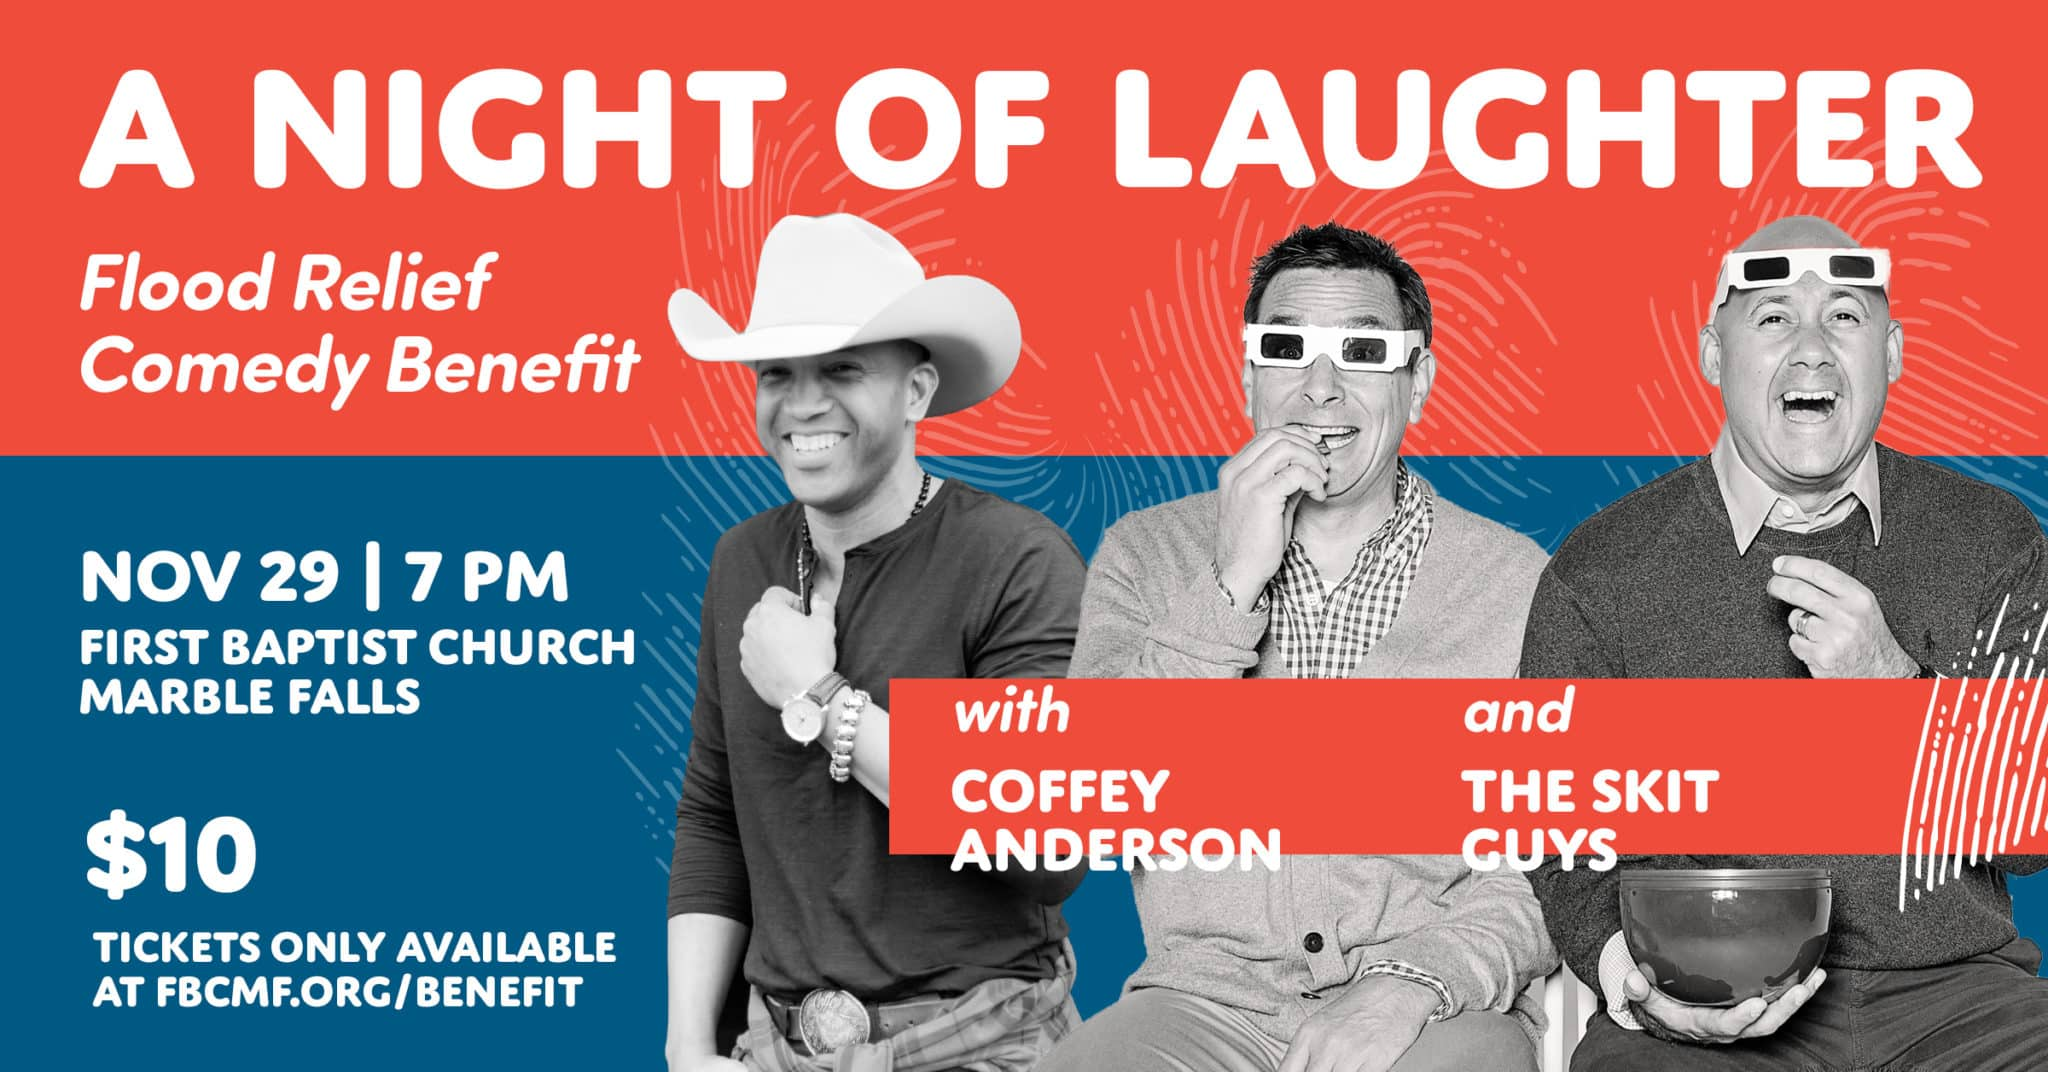 A Night of Laughter - First Baptist Church Marble Falls